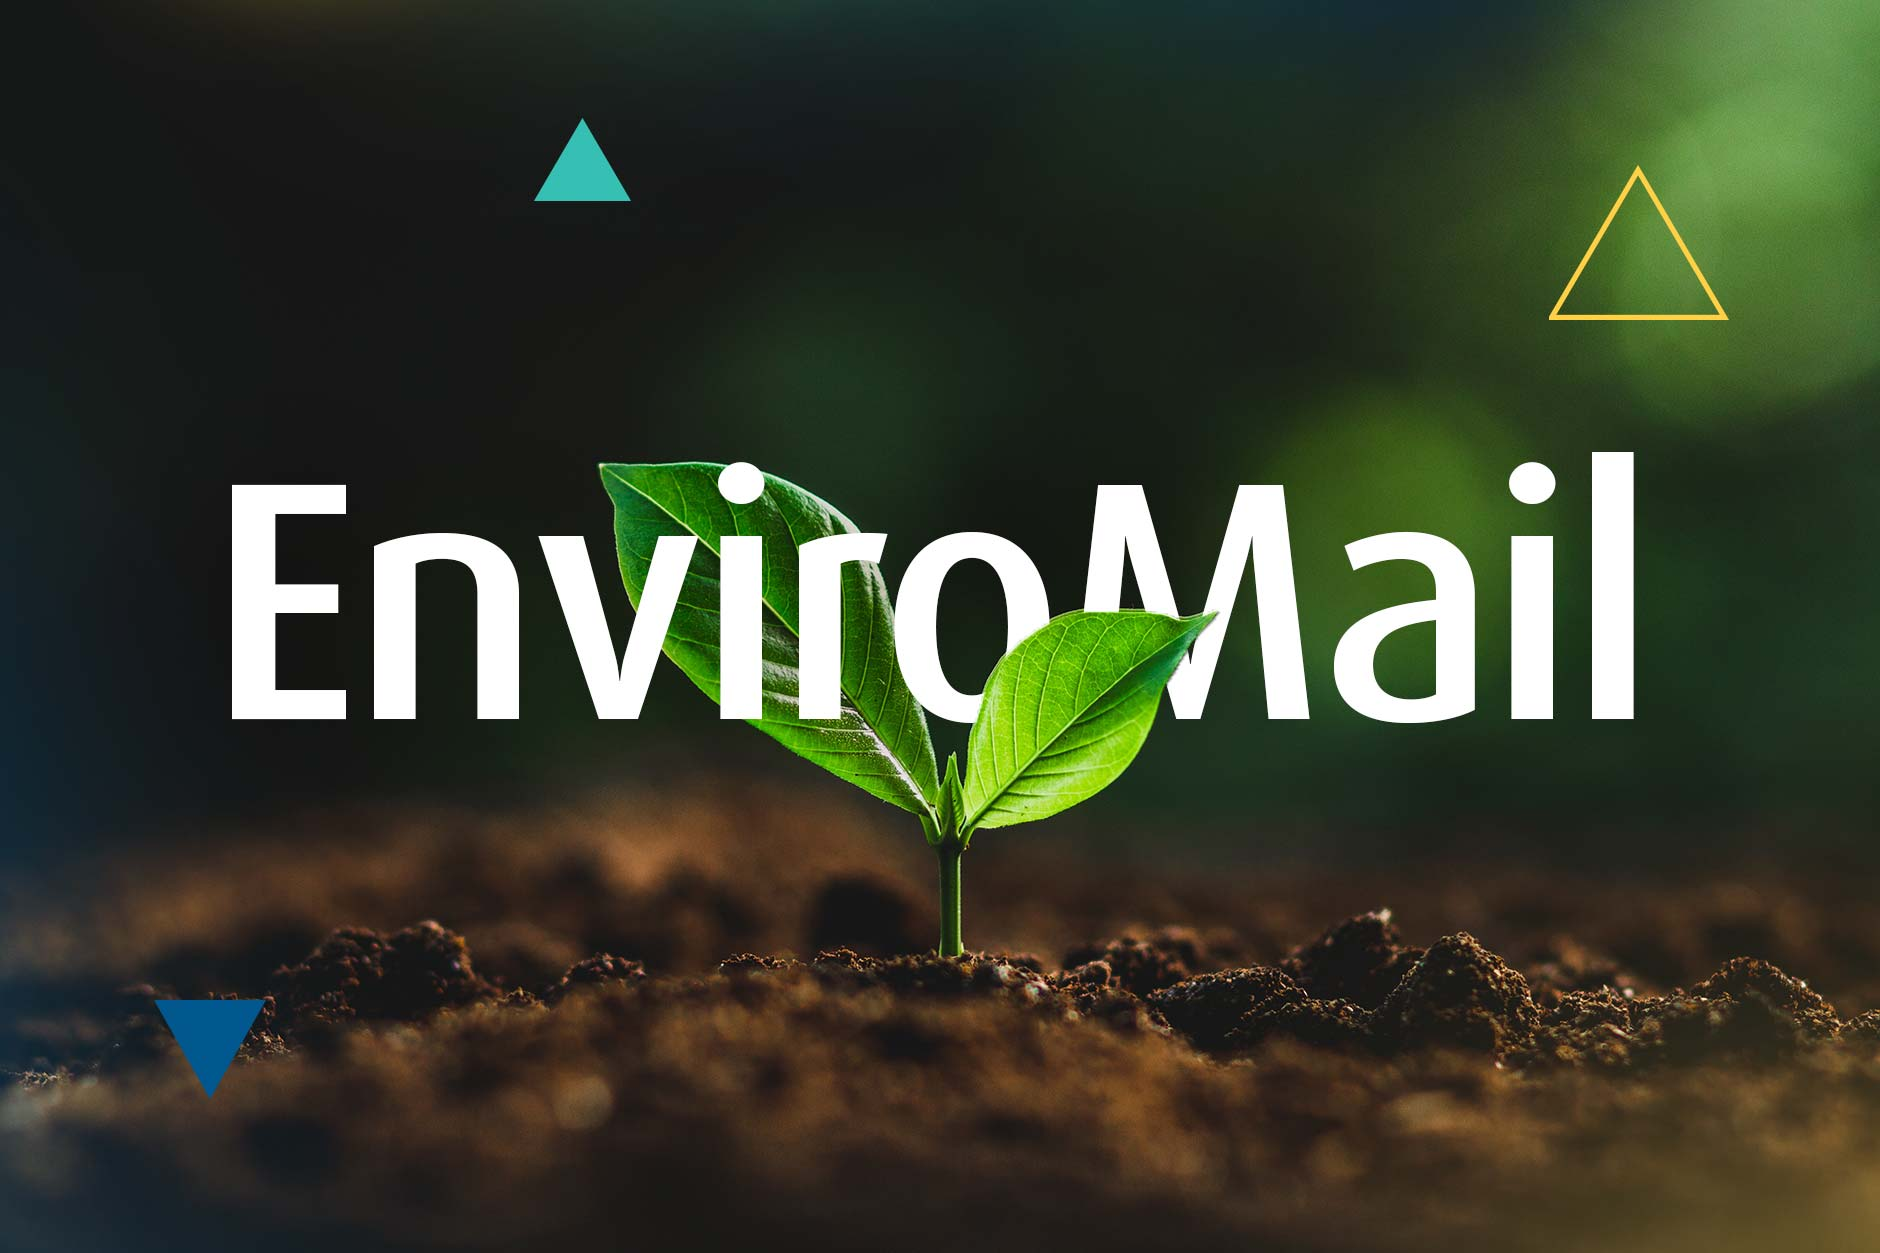 enviromail channel icon